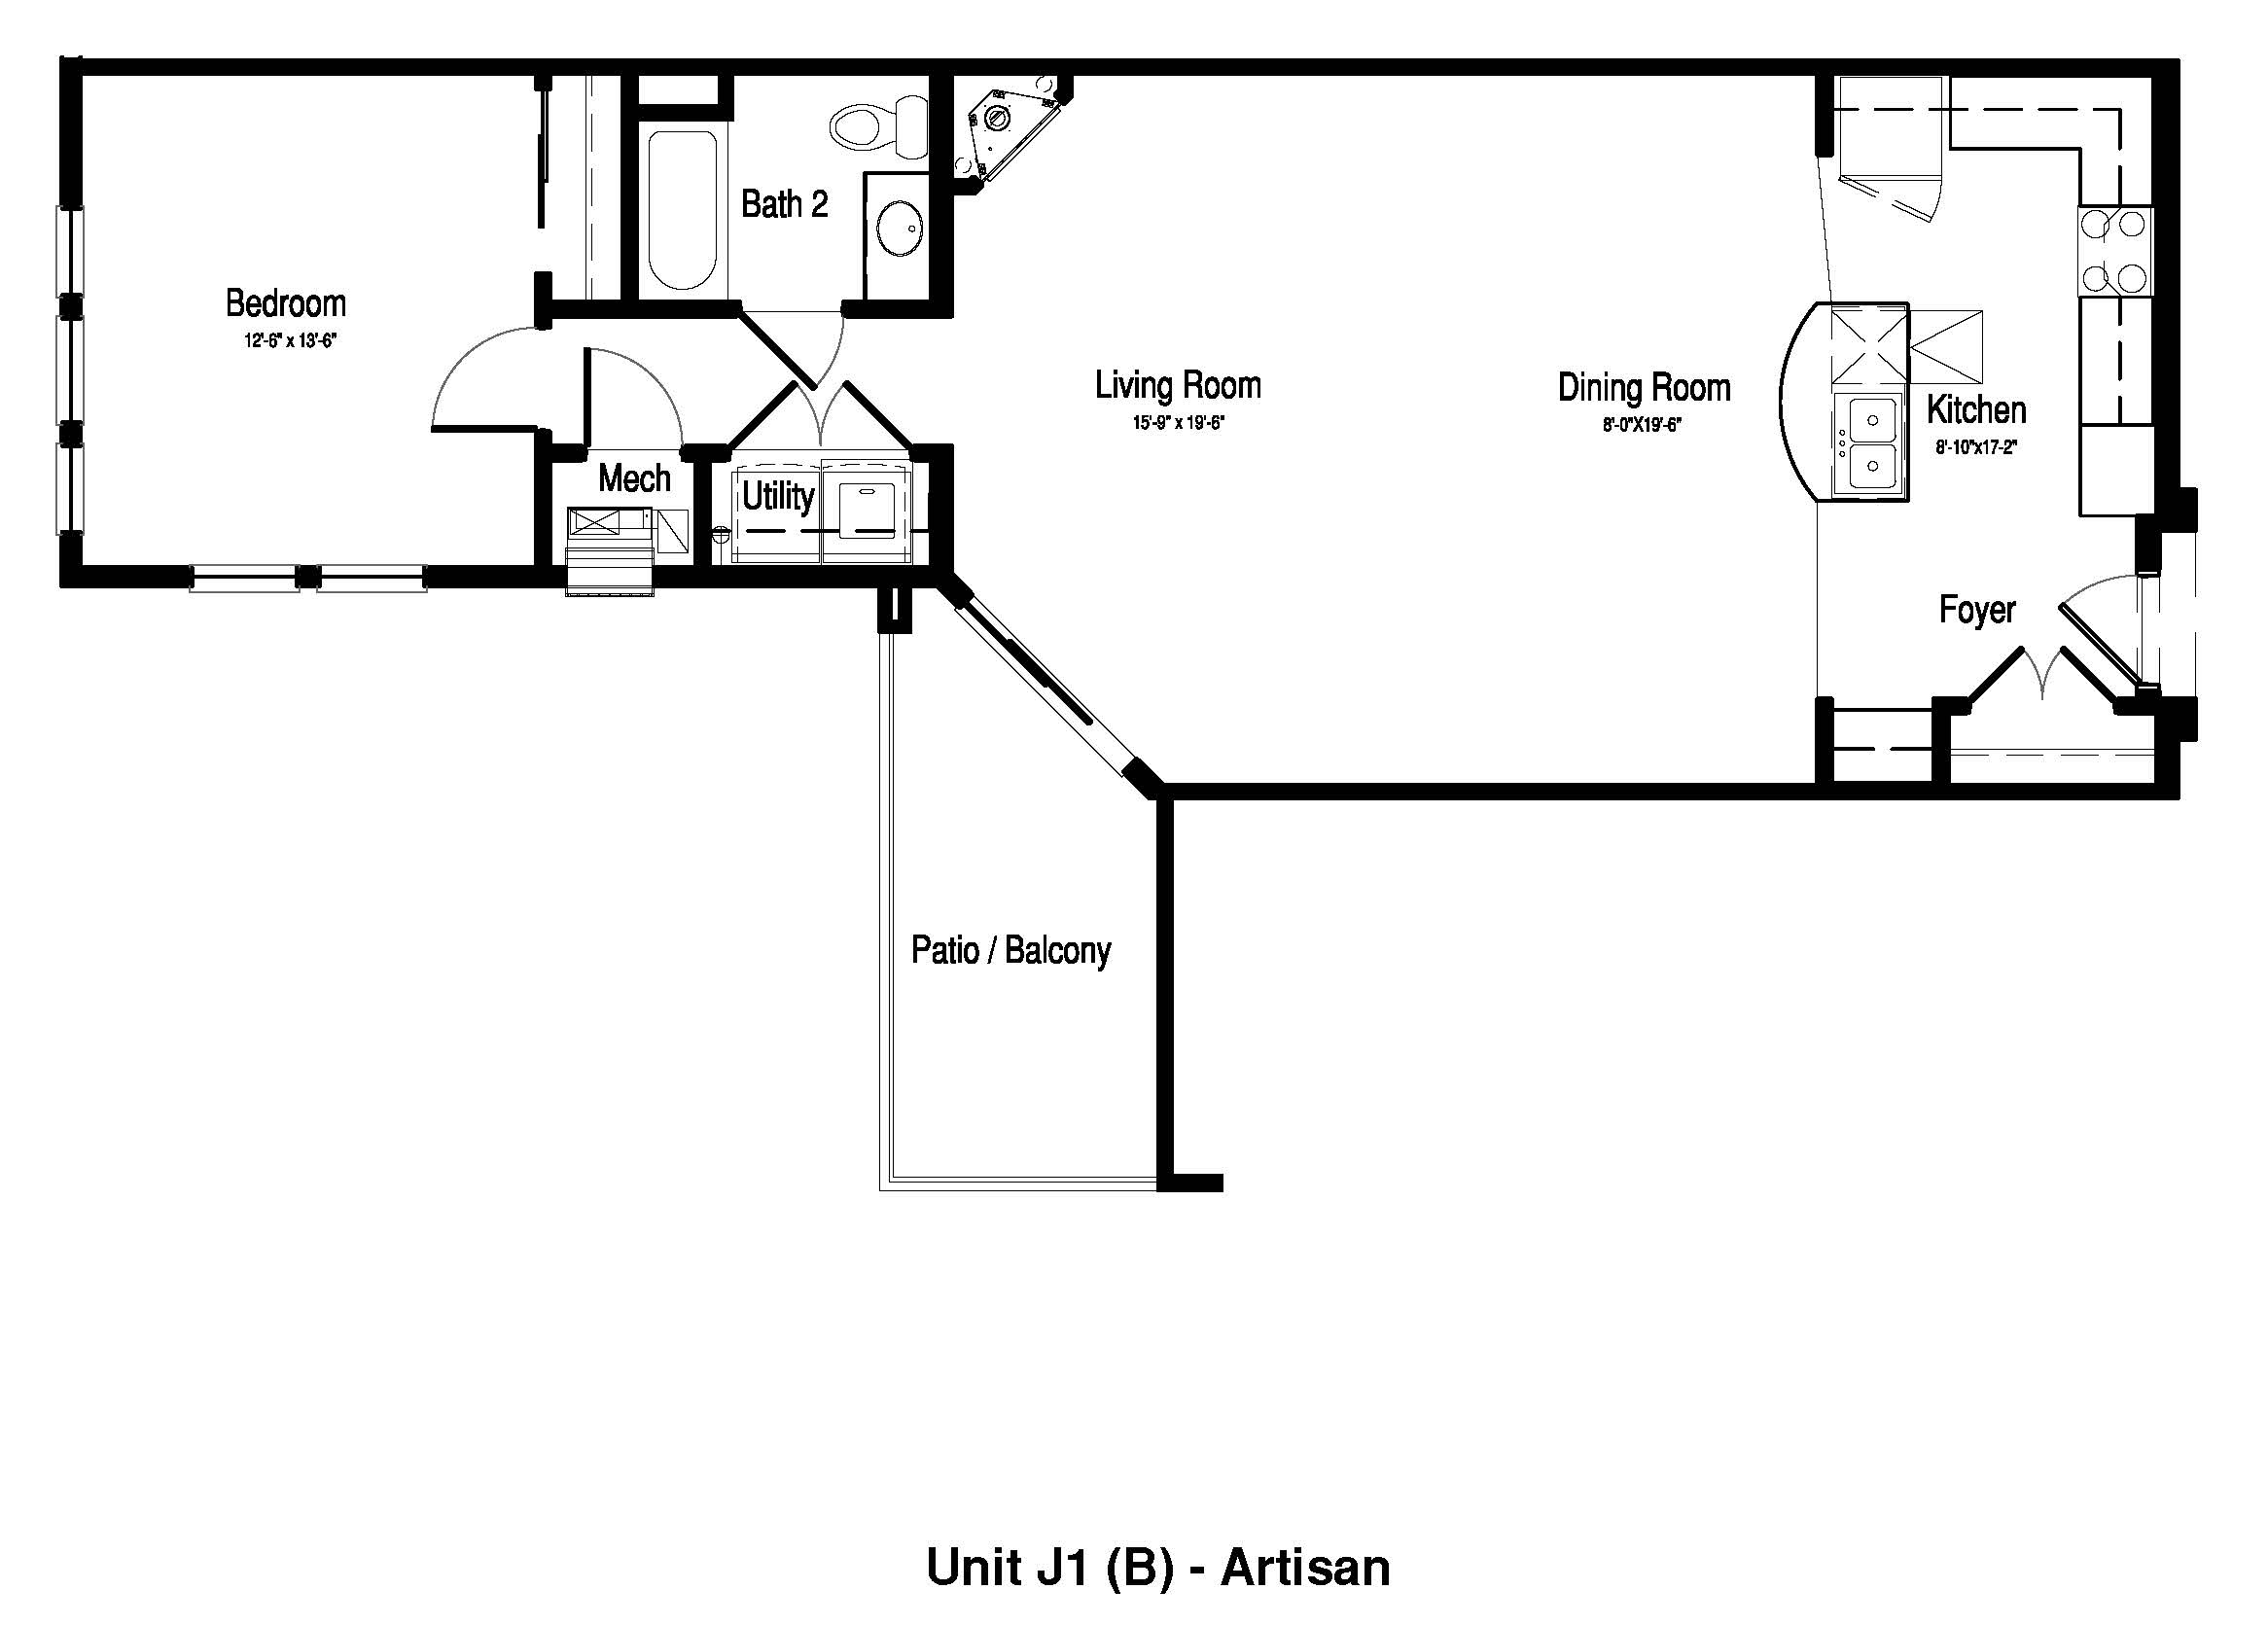 One Bedroom, One Bath - 1,063 - 1,101 Sq. Ft. - The Artisan at Georgetown Square